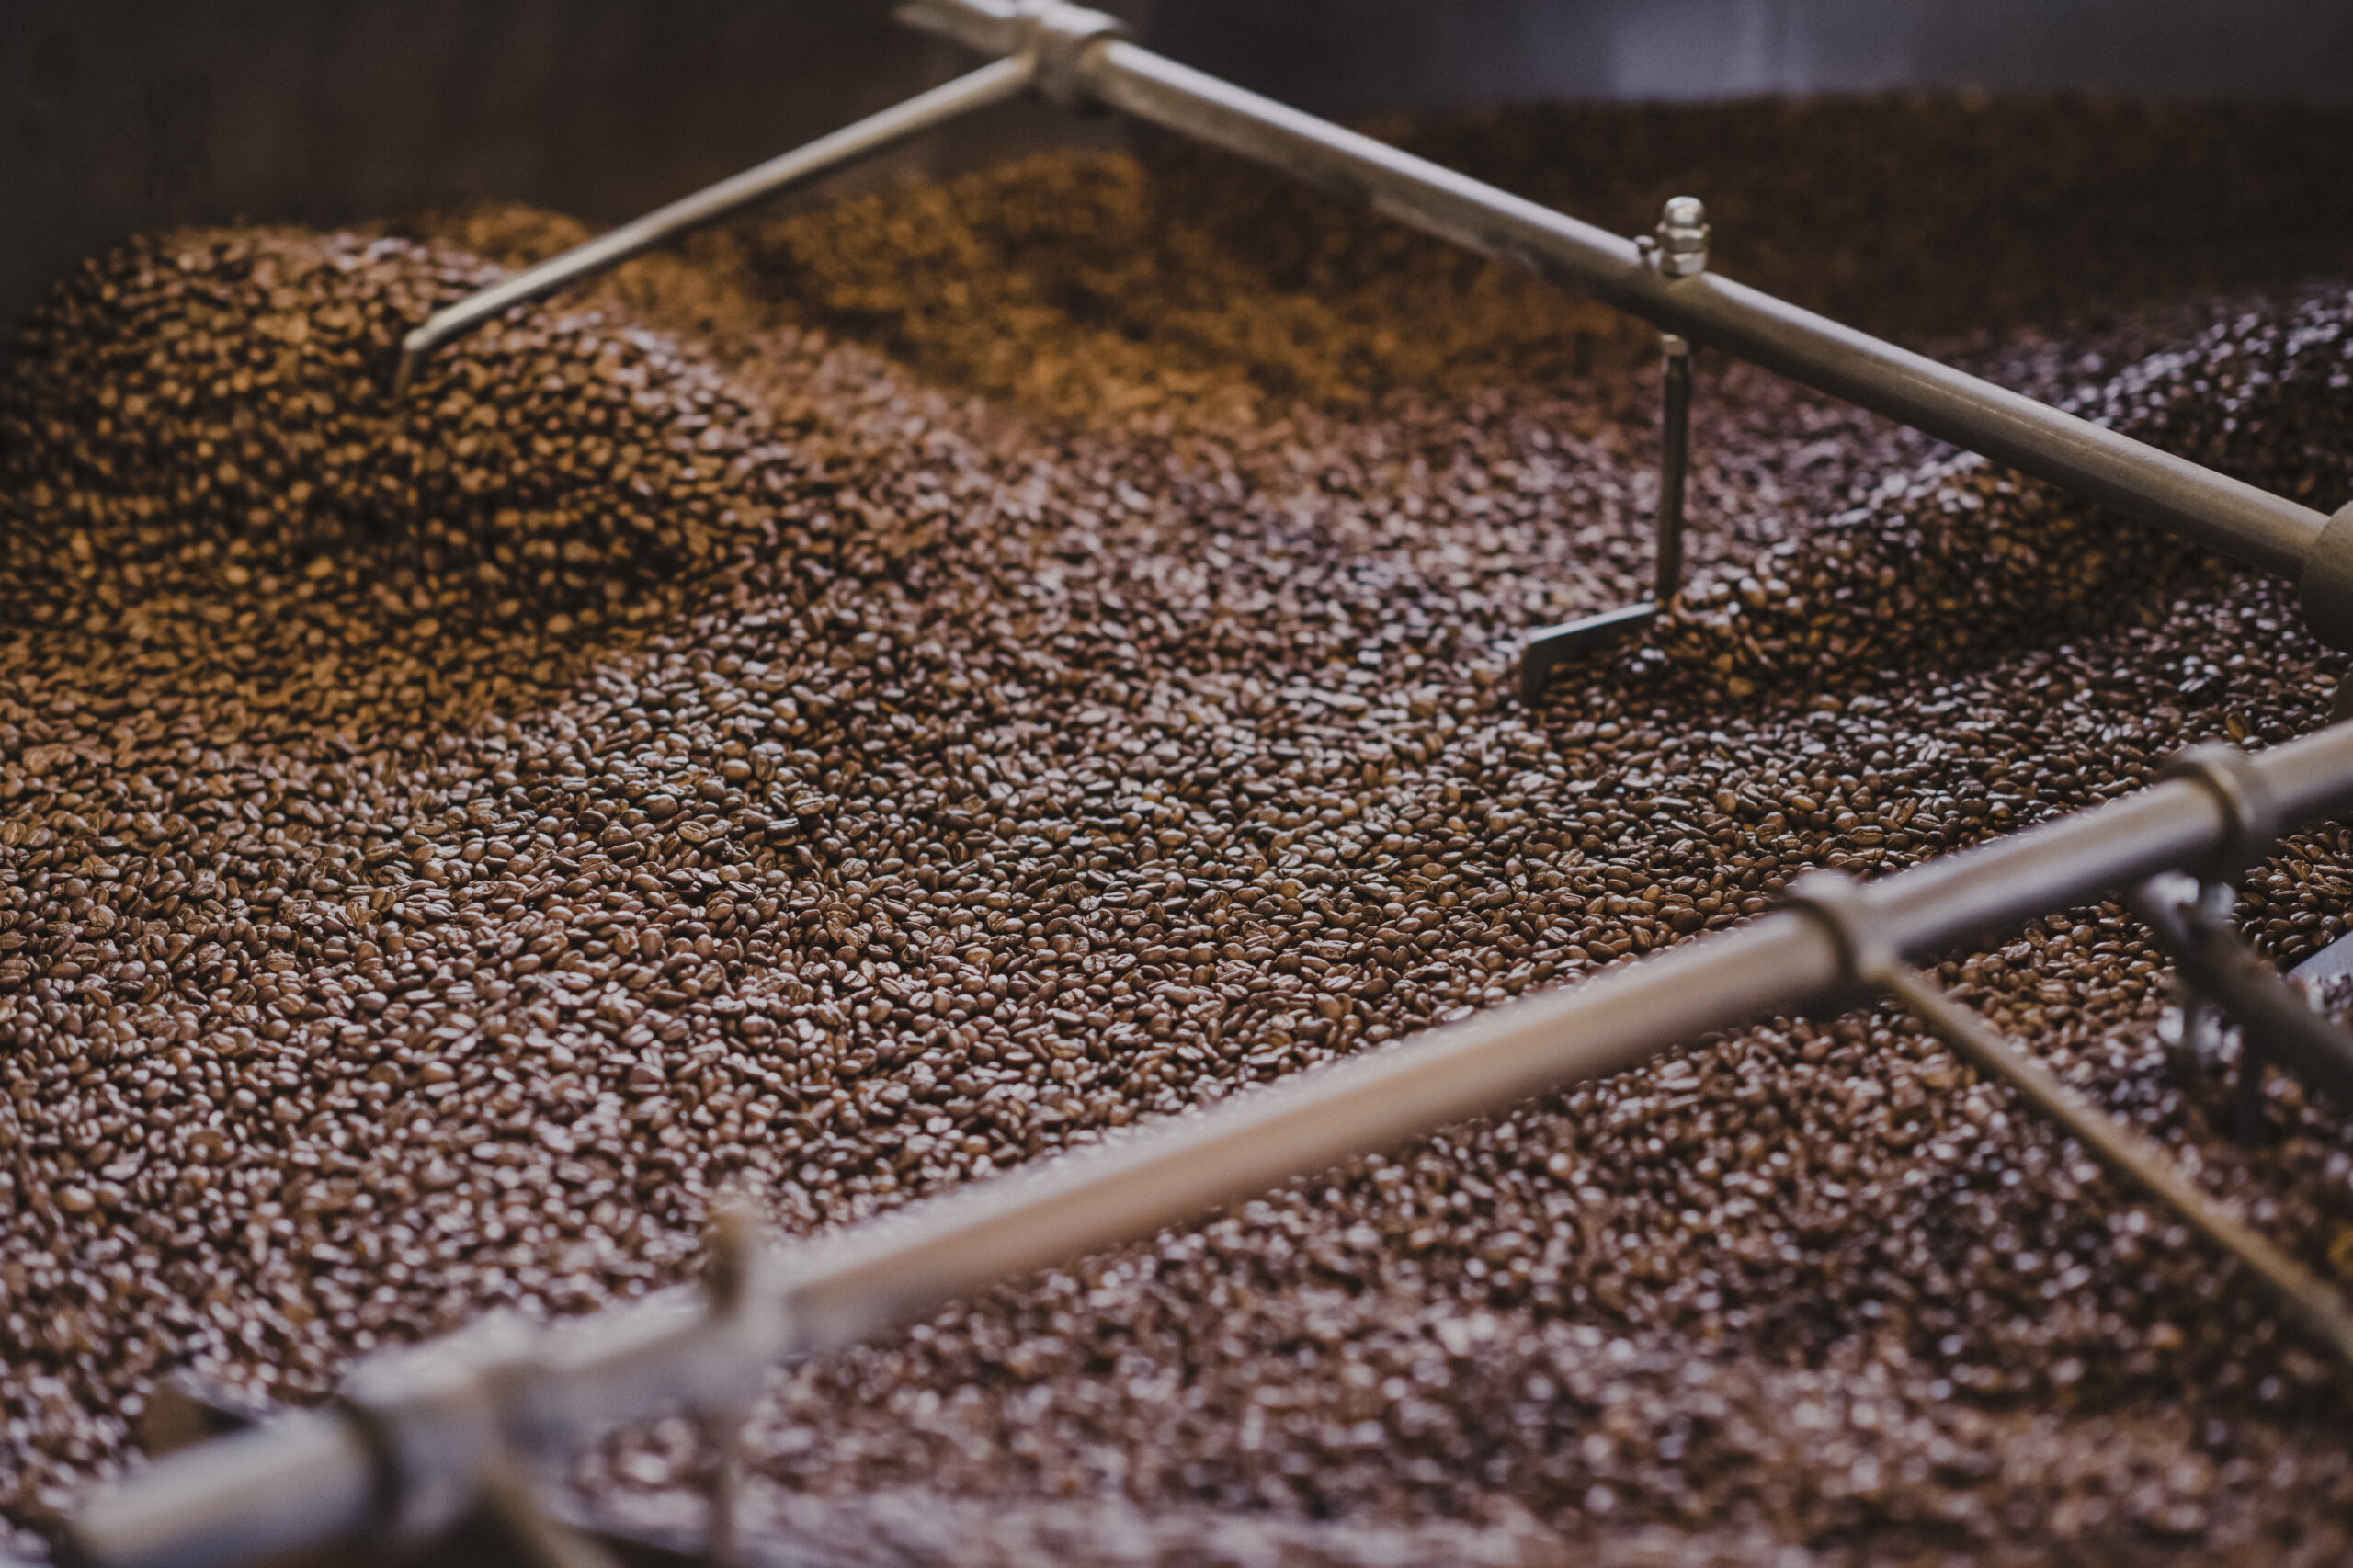 Busting the microlot myth